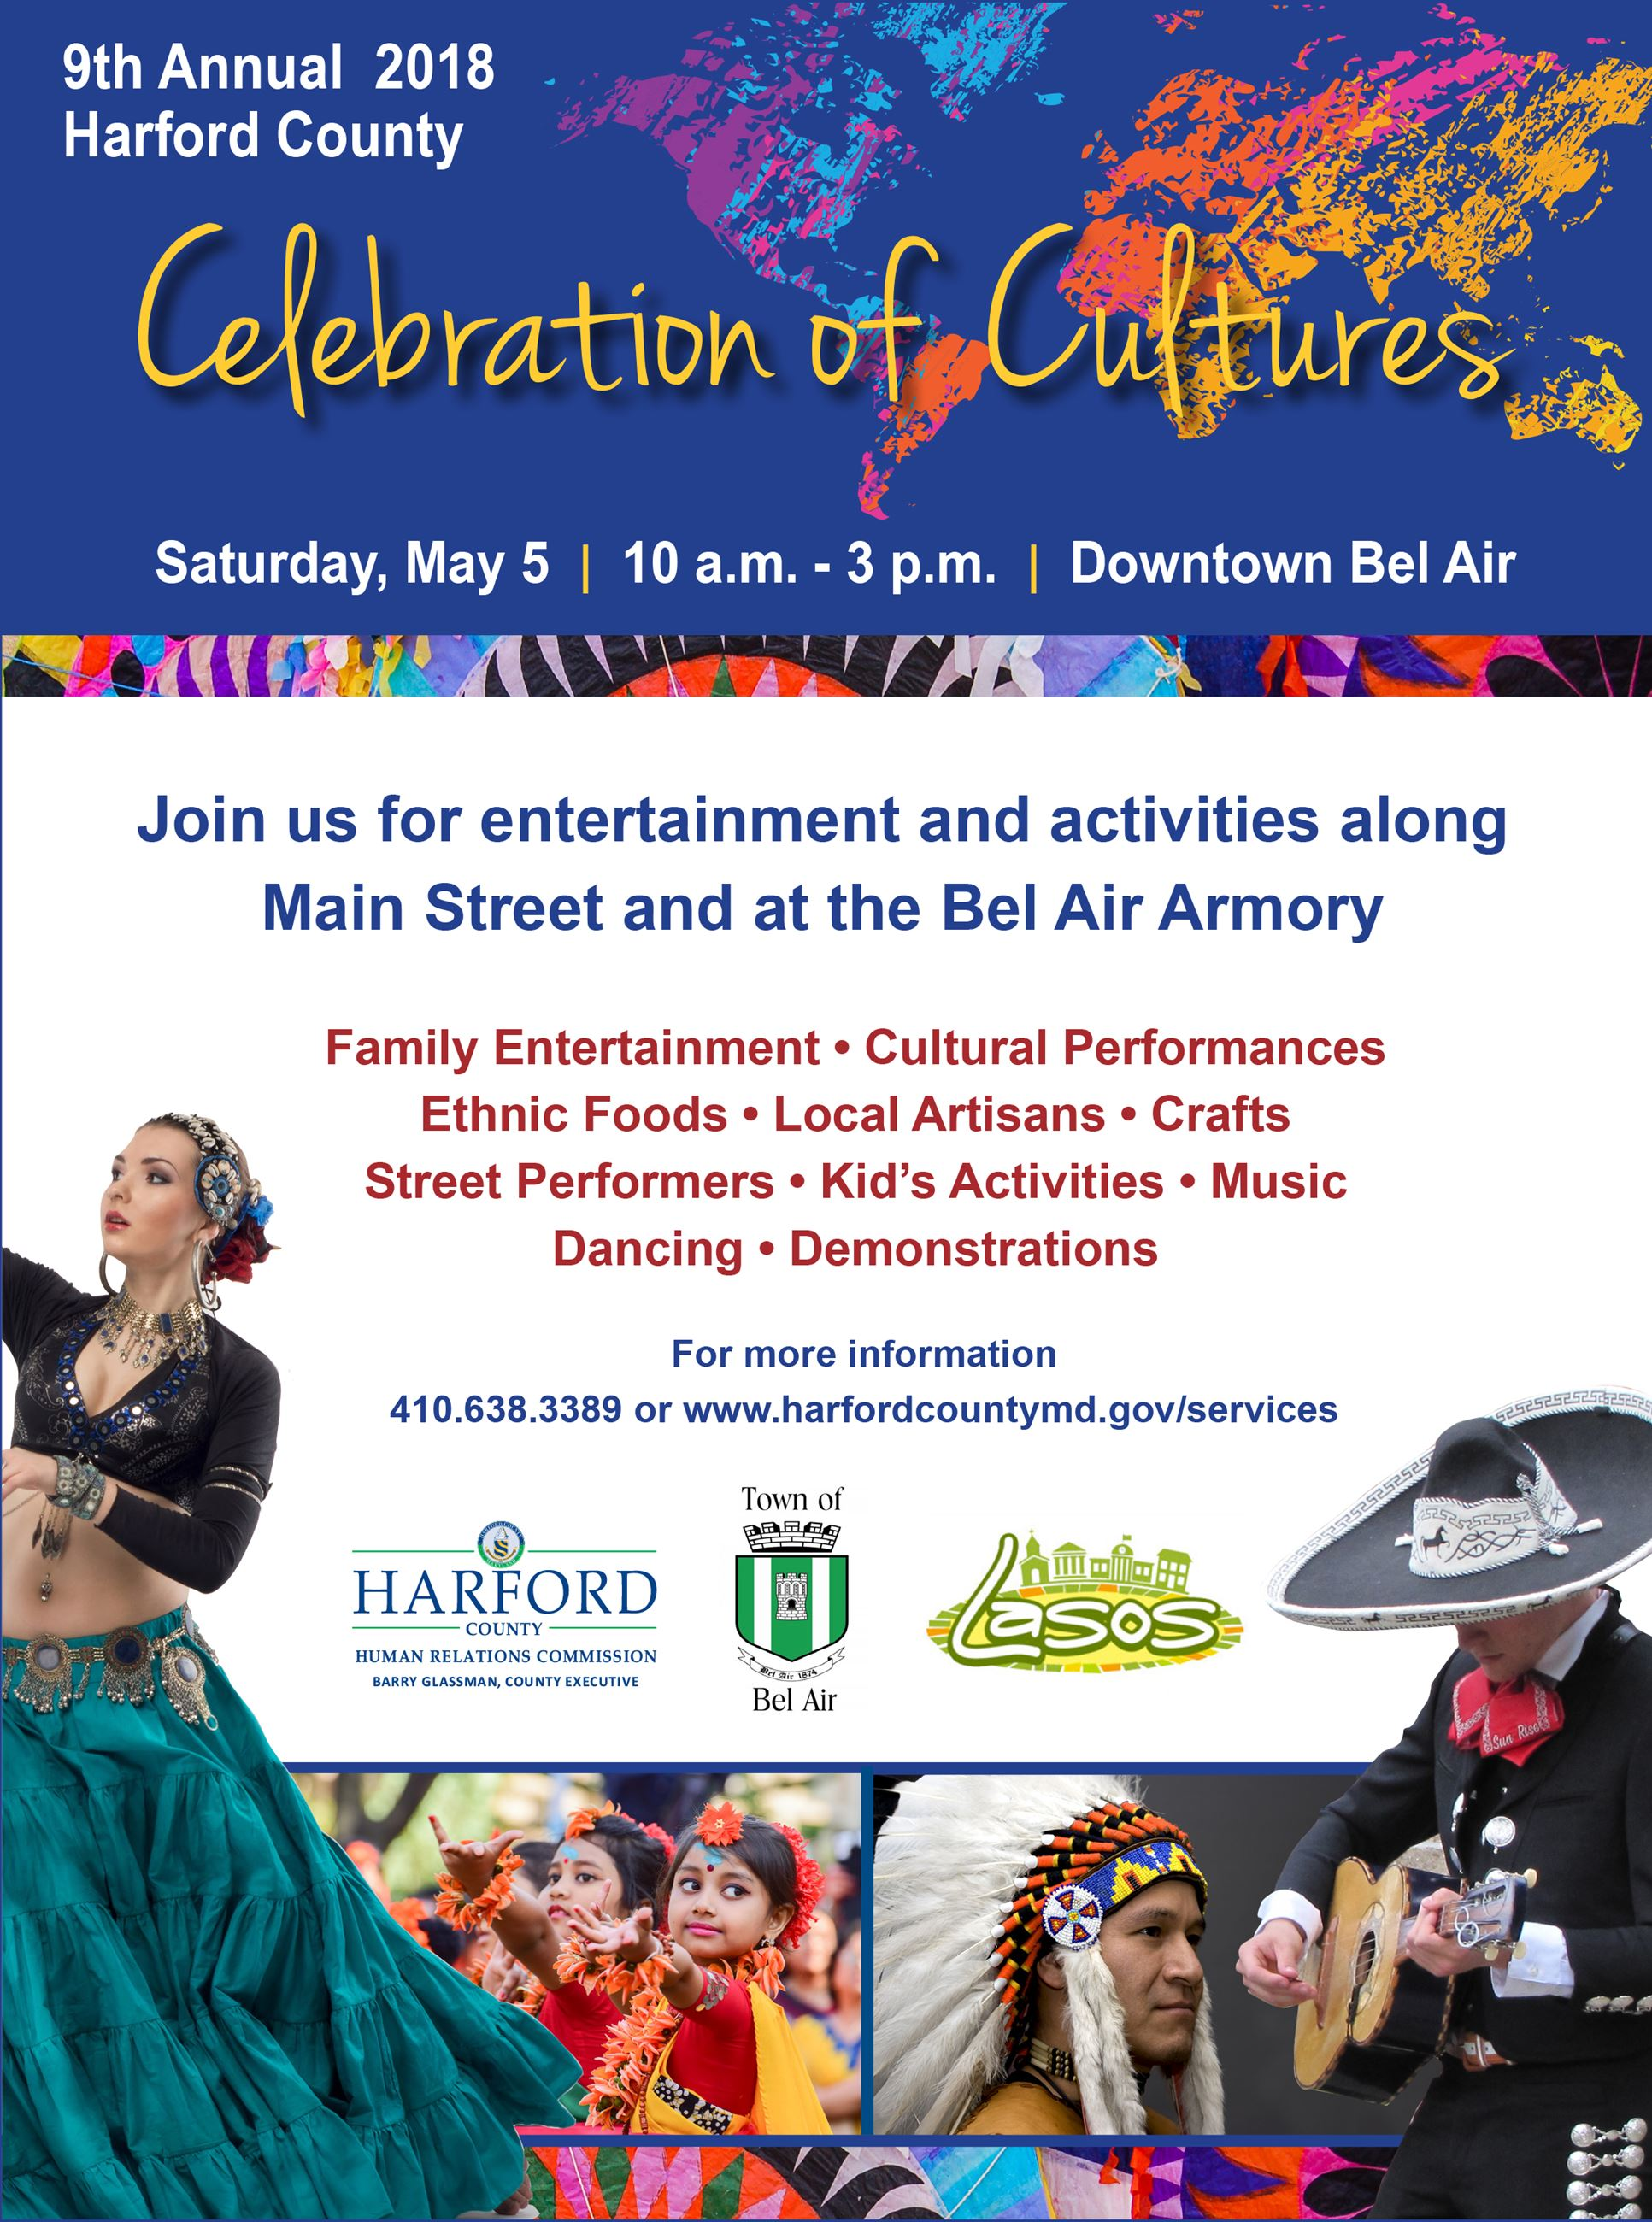 Celebration of Cultures Flyer Image